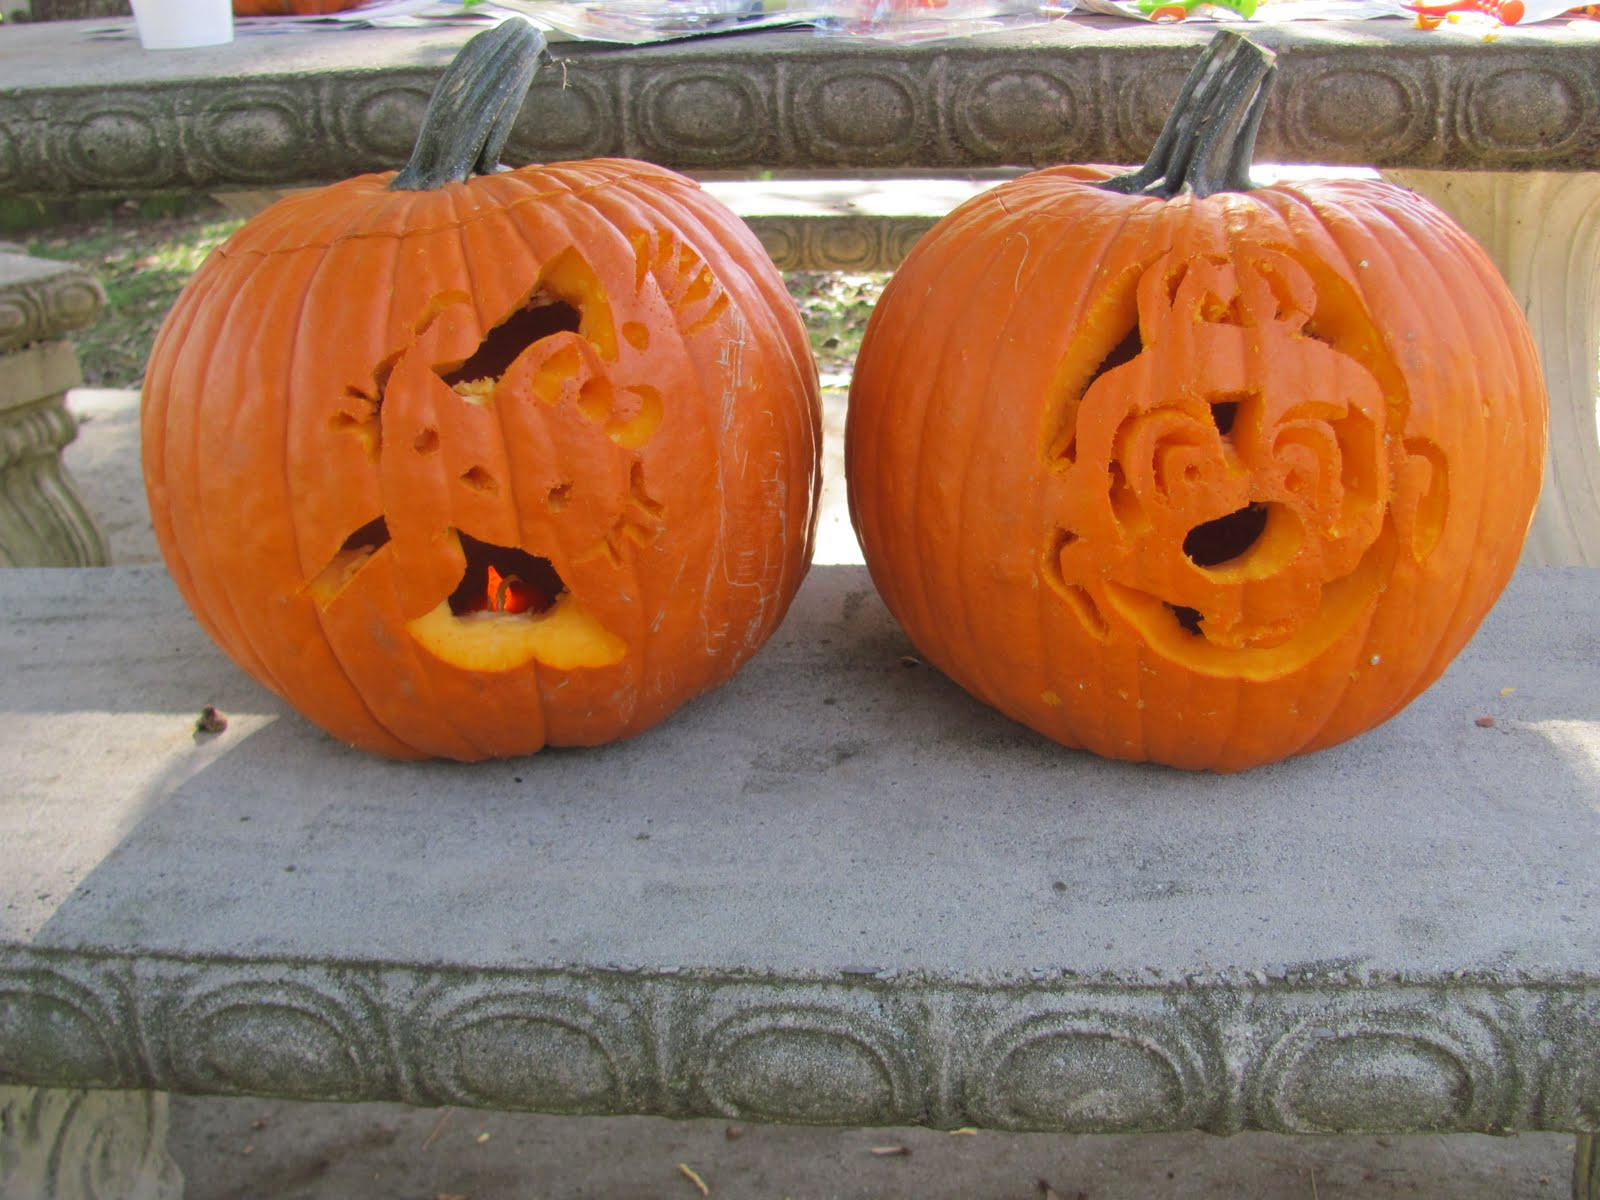 Snips snails and ladybug tales it s the great pumpkin